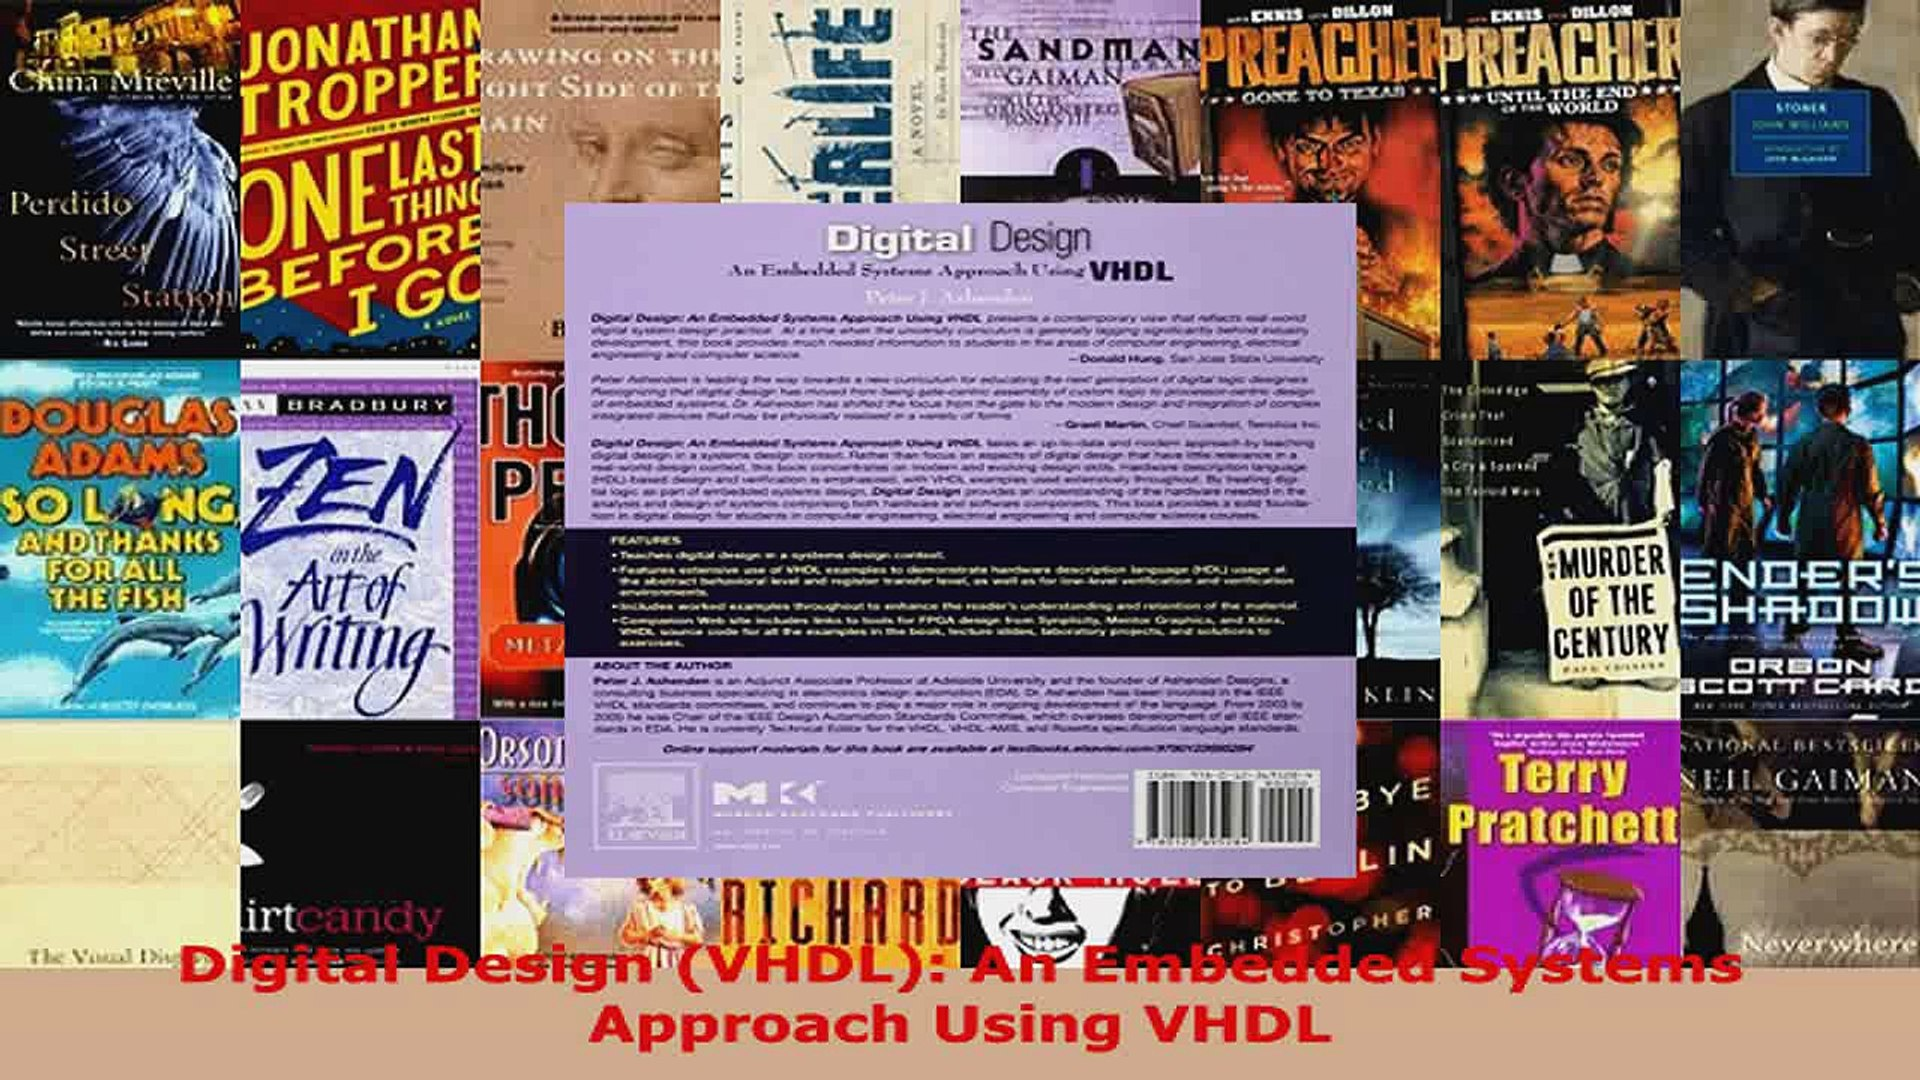 Read Digital Design Vhdl An Embedded Systems Approach Using Vhdl Ebook Free Video Dailymotion